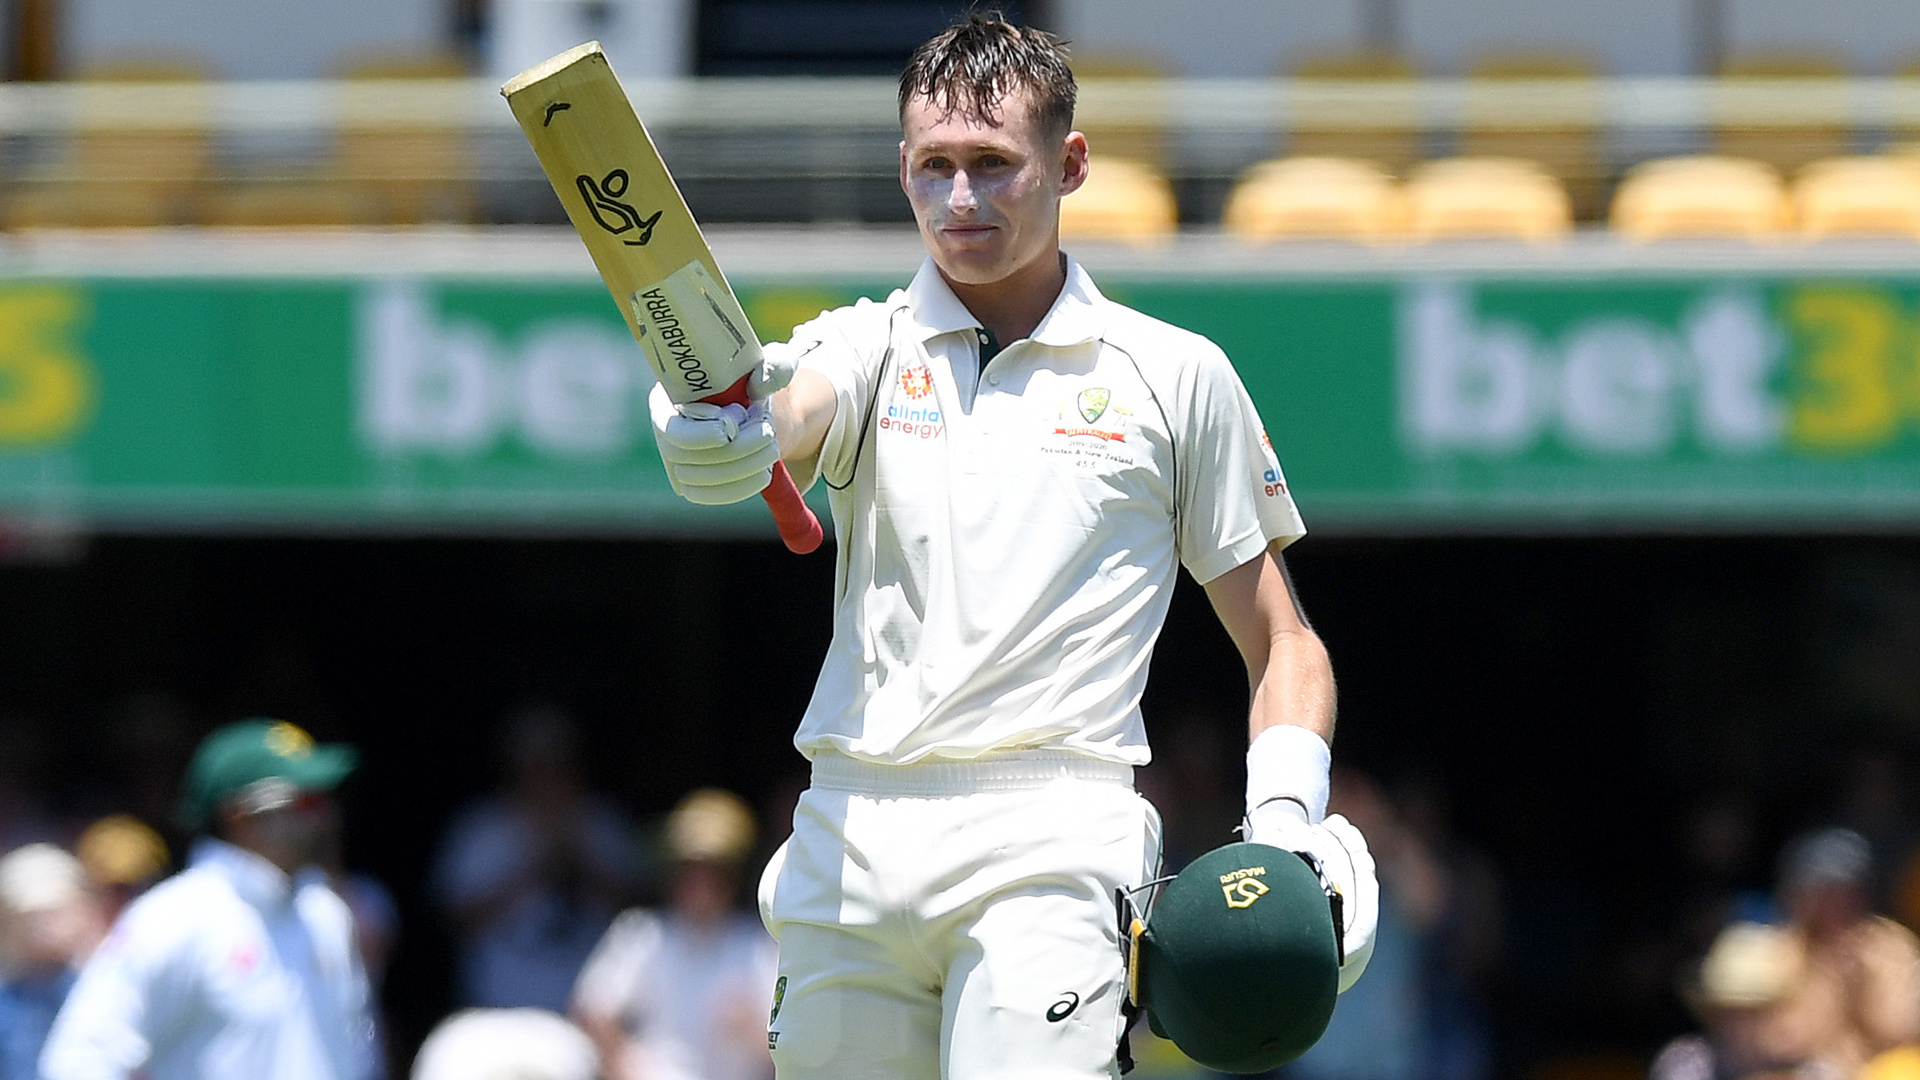 Australia close in on Pakistan win after Labuschagne's maiden Test century